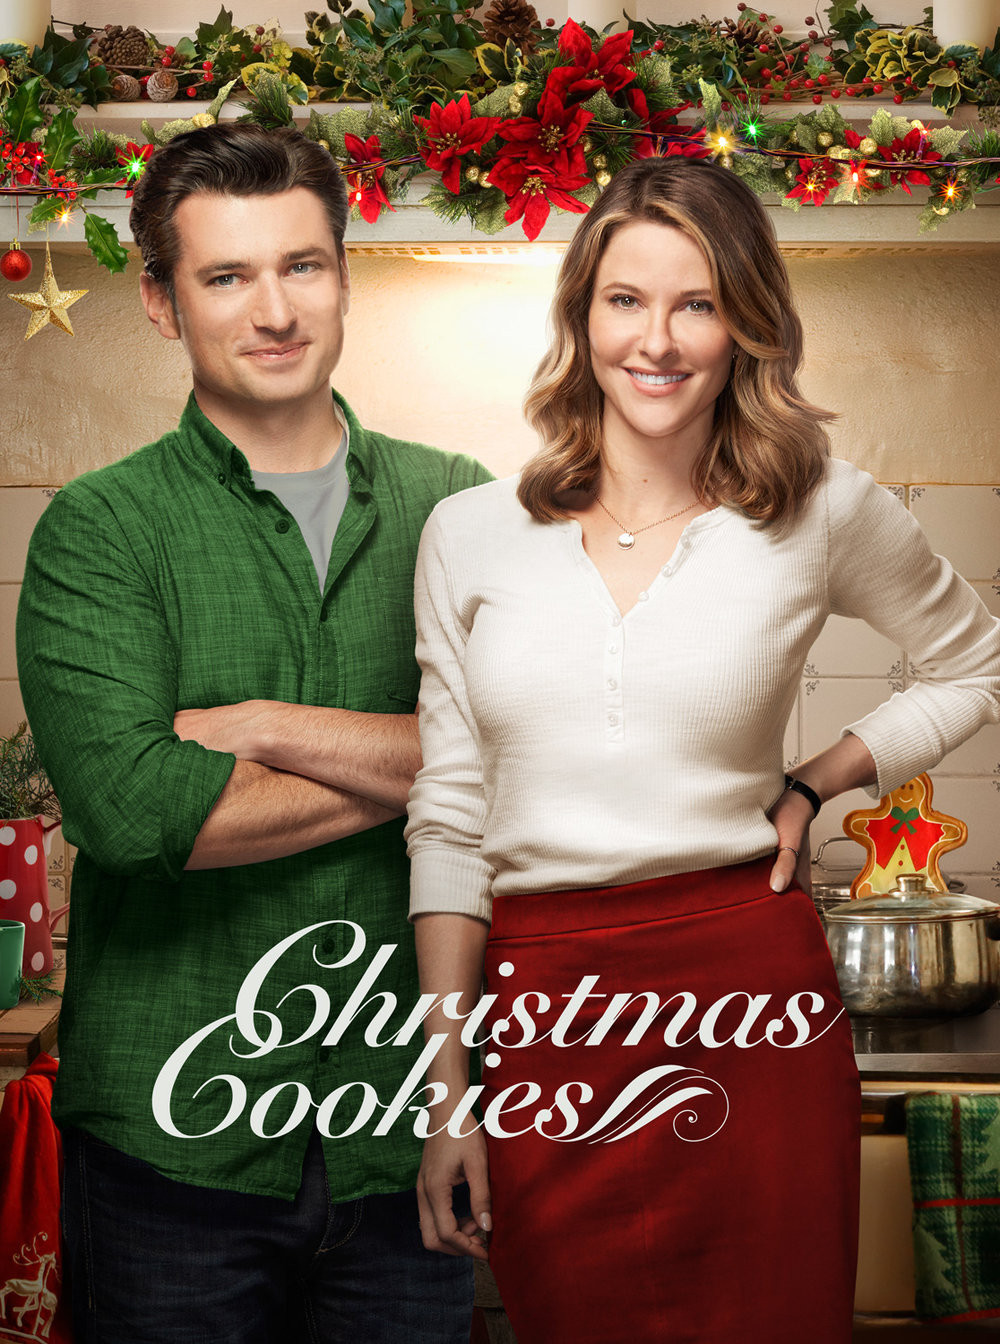 """Christmas Cookies"" Hallmark movie poster"